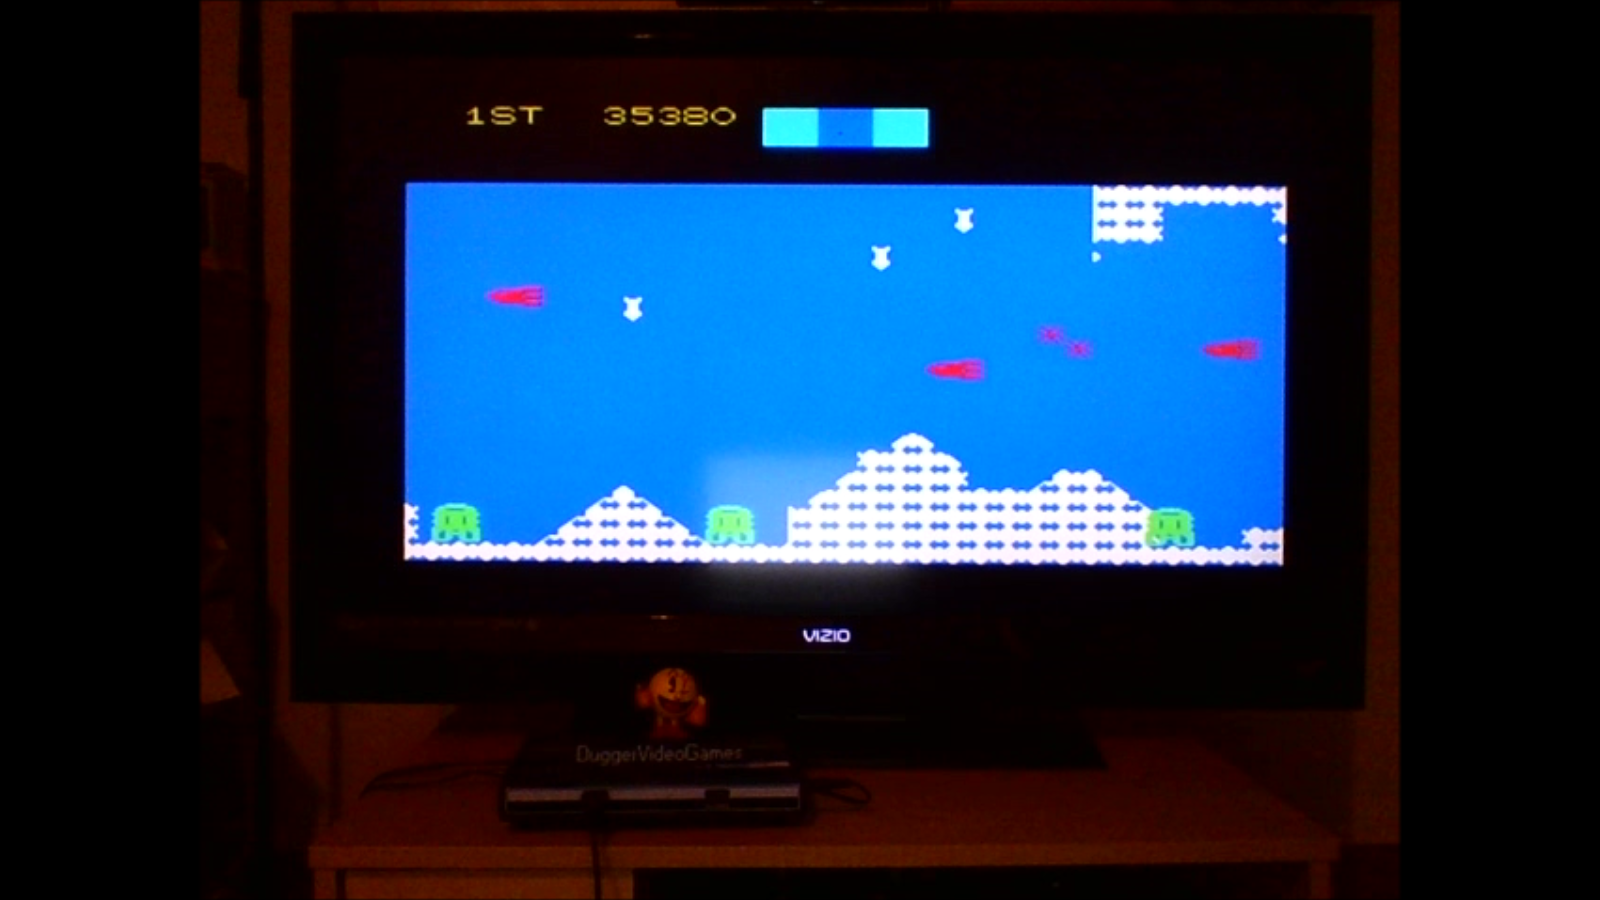 DuggerVideoGames: Cosmic Avenger: Skill 4 (Colecovision Emulated) 35,380 points on 2016-08-14 21:23:24